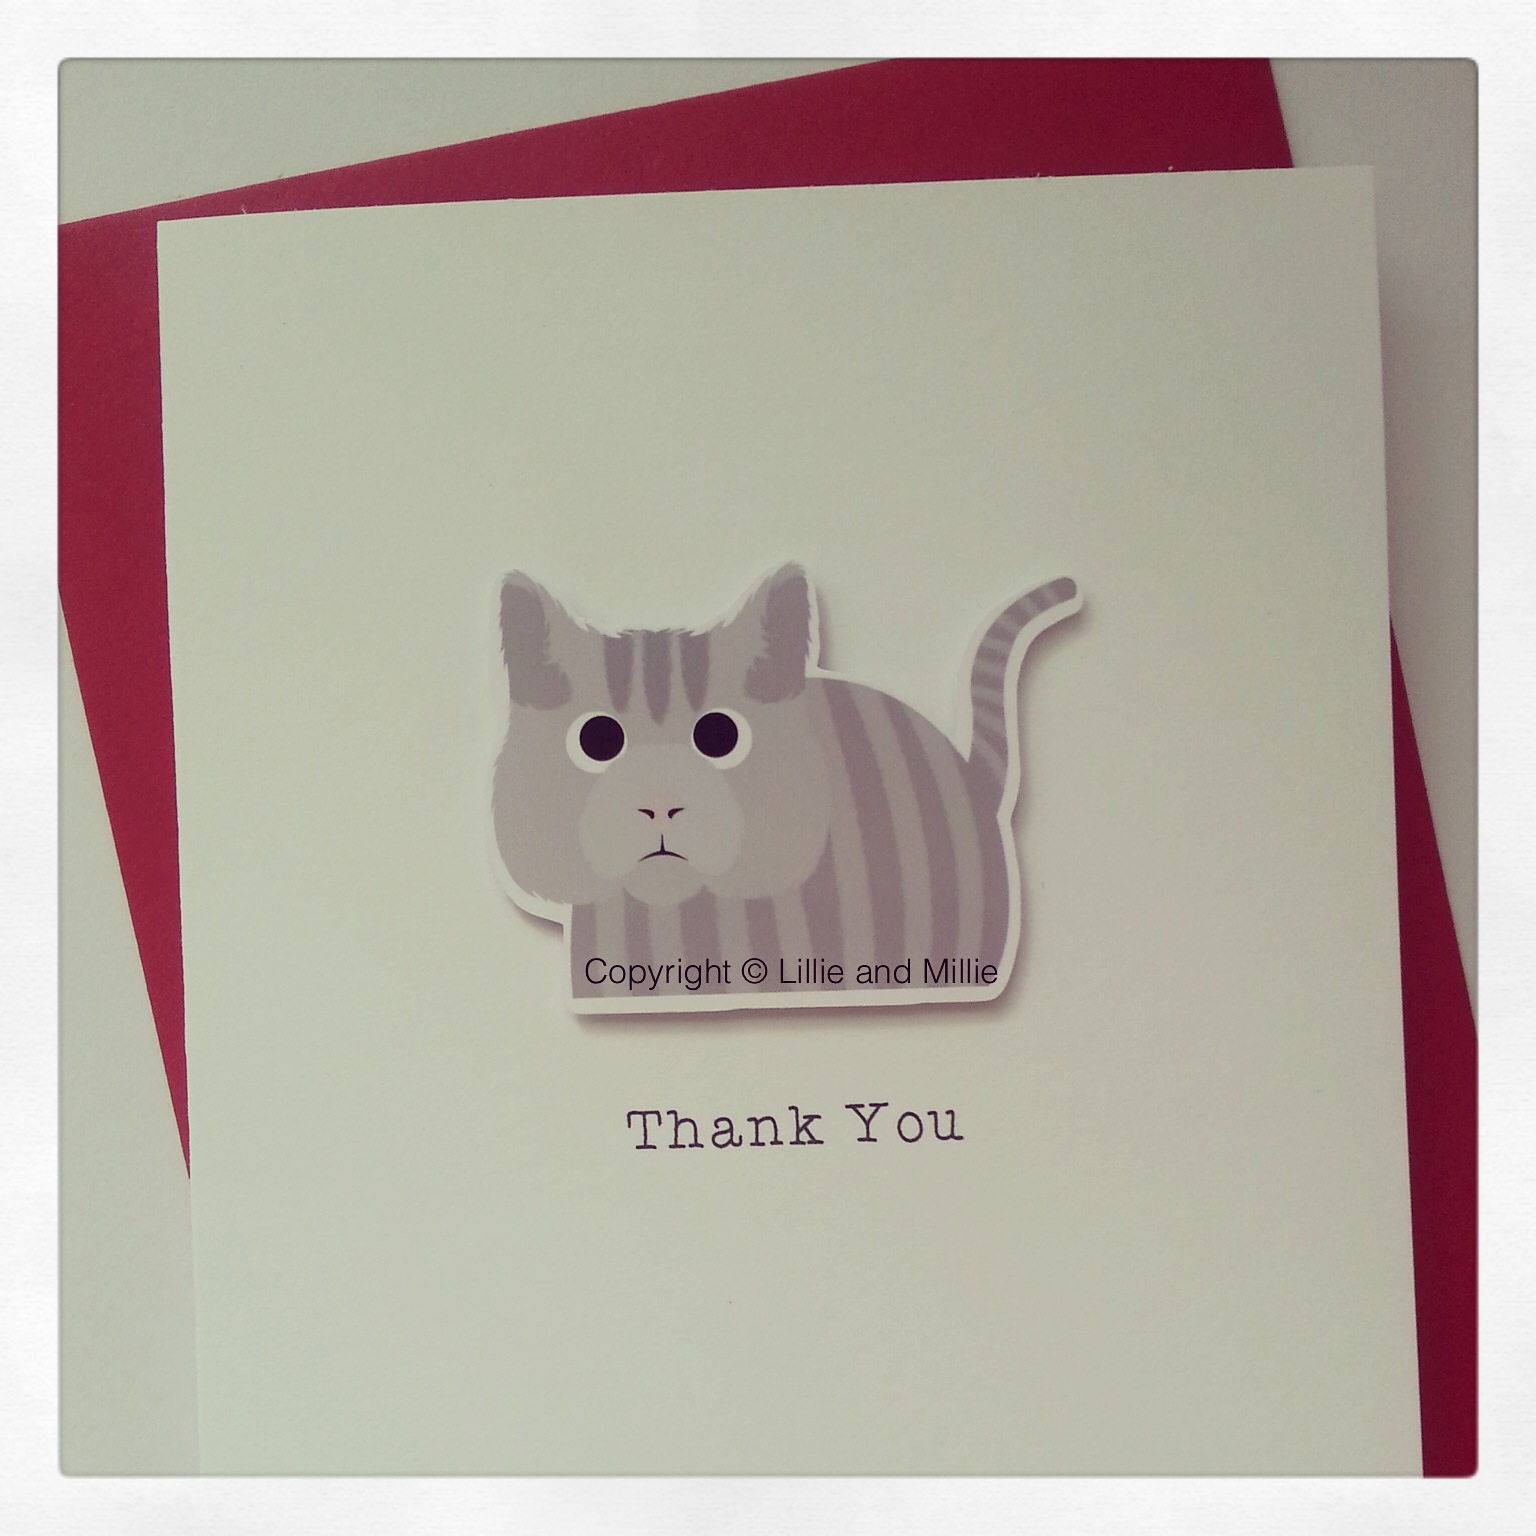 Cute and Cuddly Silver Tabby Cat Greetings Card